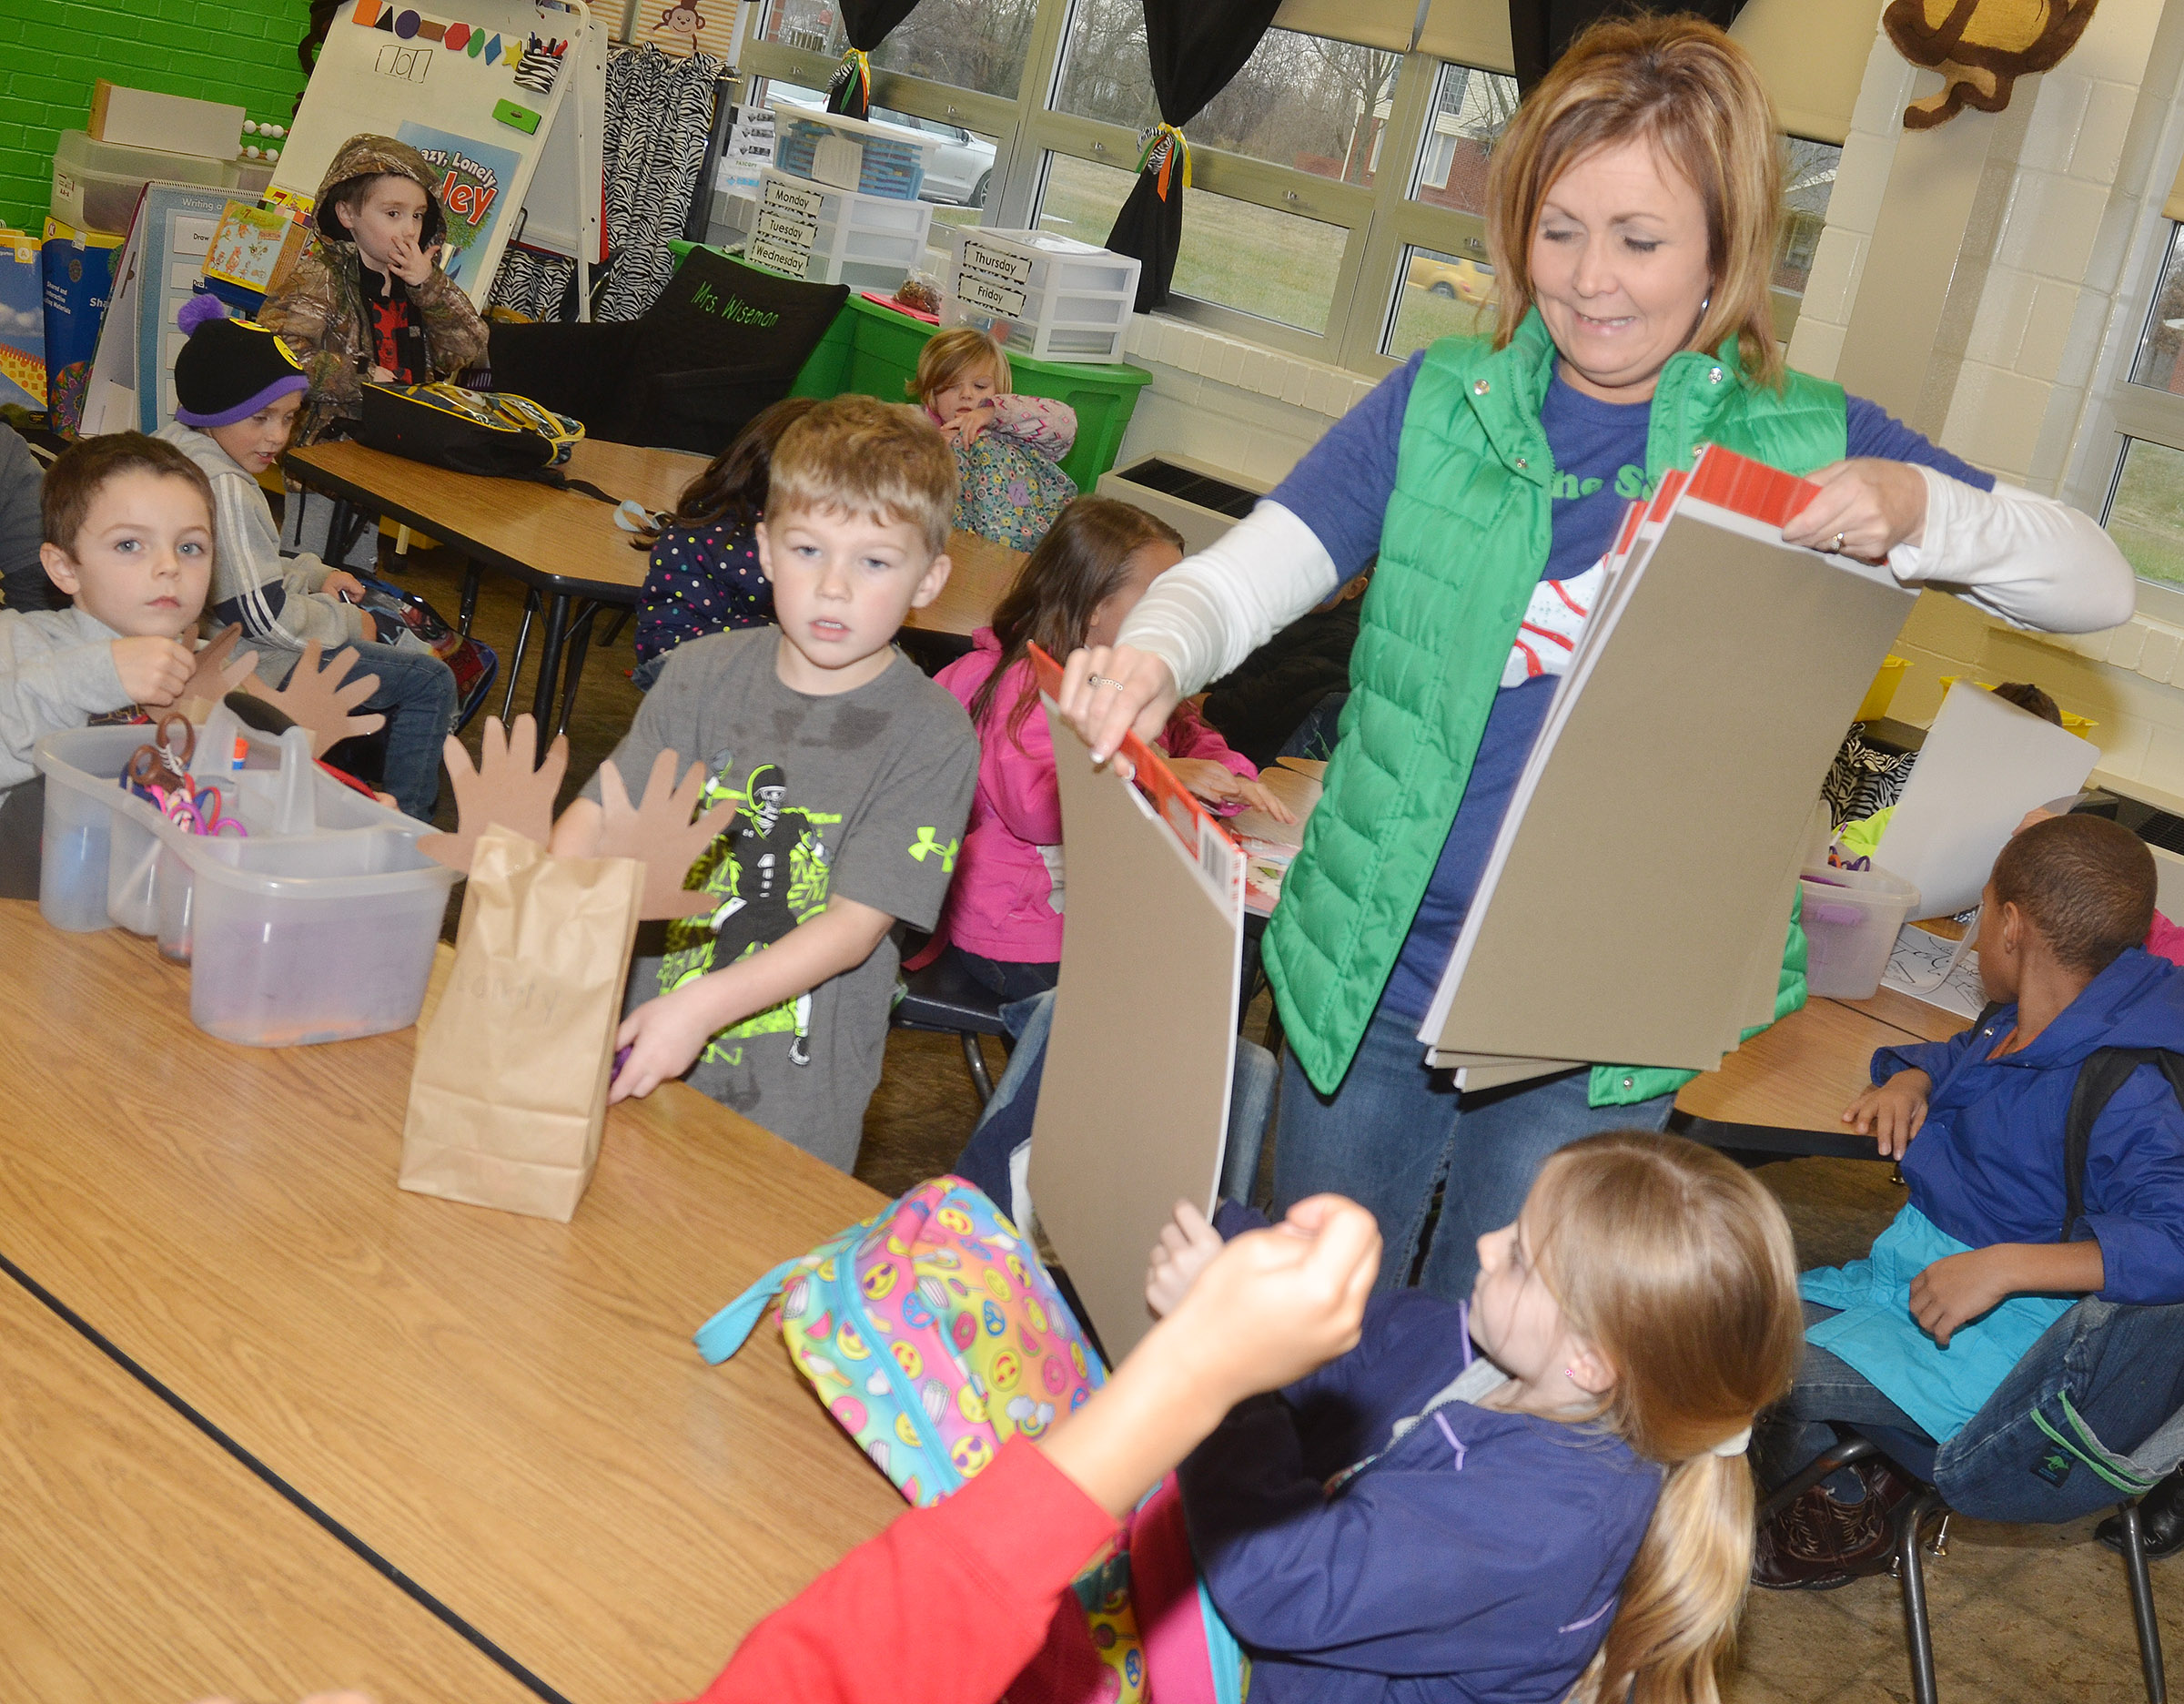 CES kindergarten teacher Lisa Wiseman passes out gifts to her students.